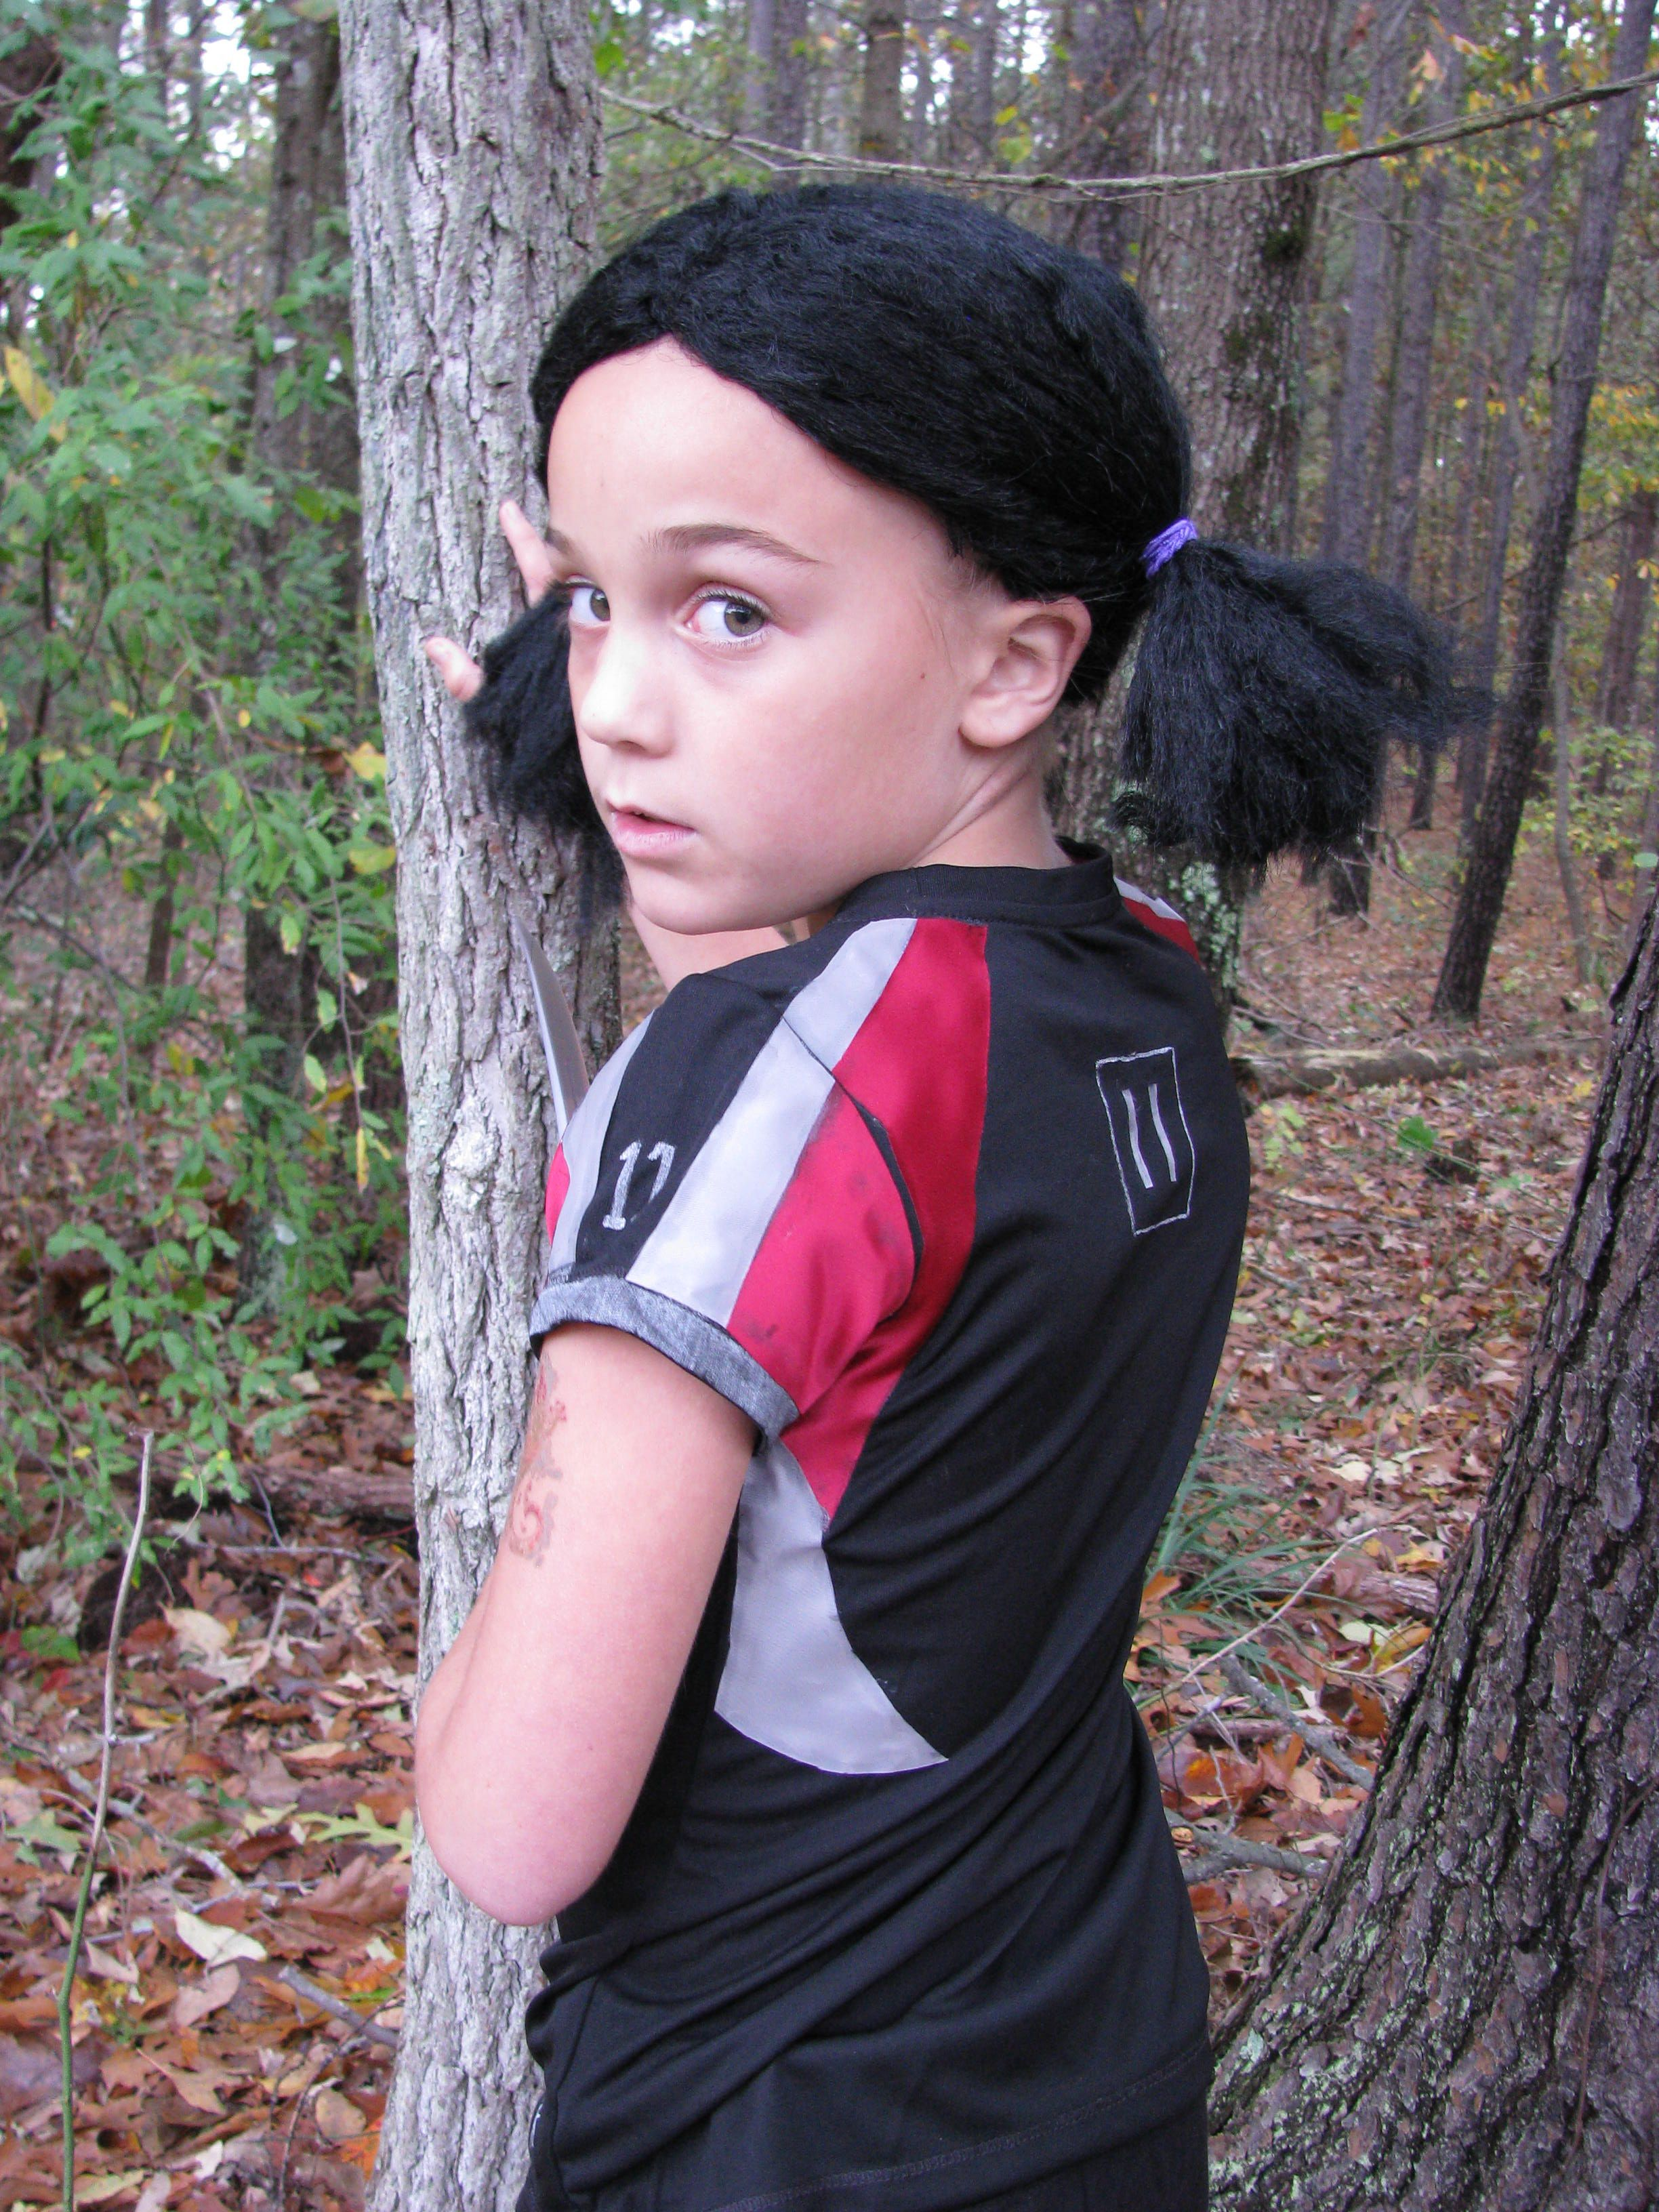 homemade rue costume from hunger games homemade. Black Bedroom Furniture Sets. Home Design Ideas